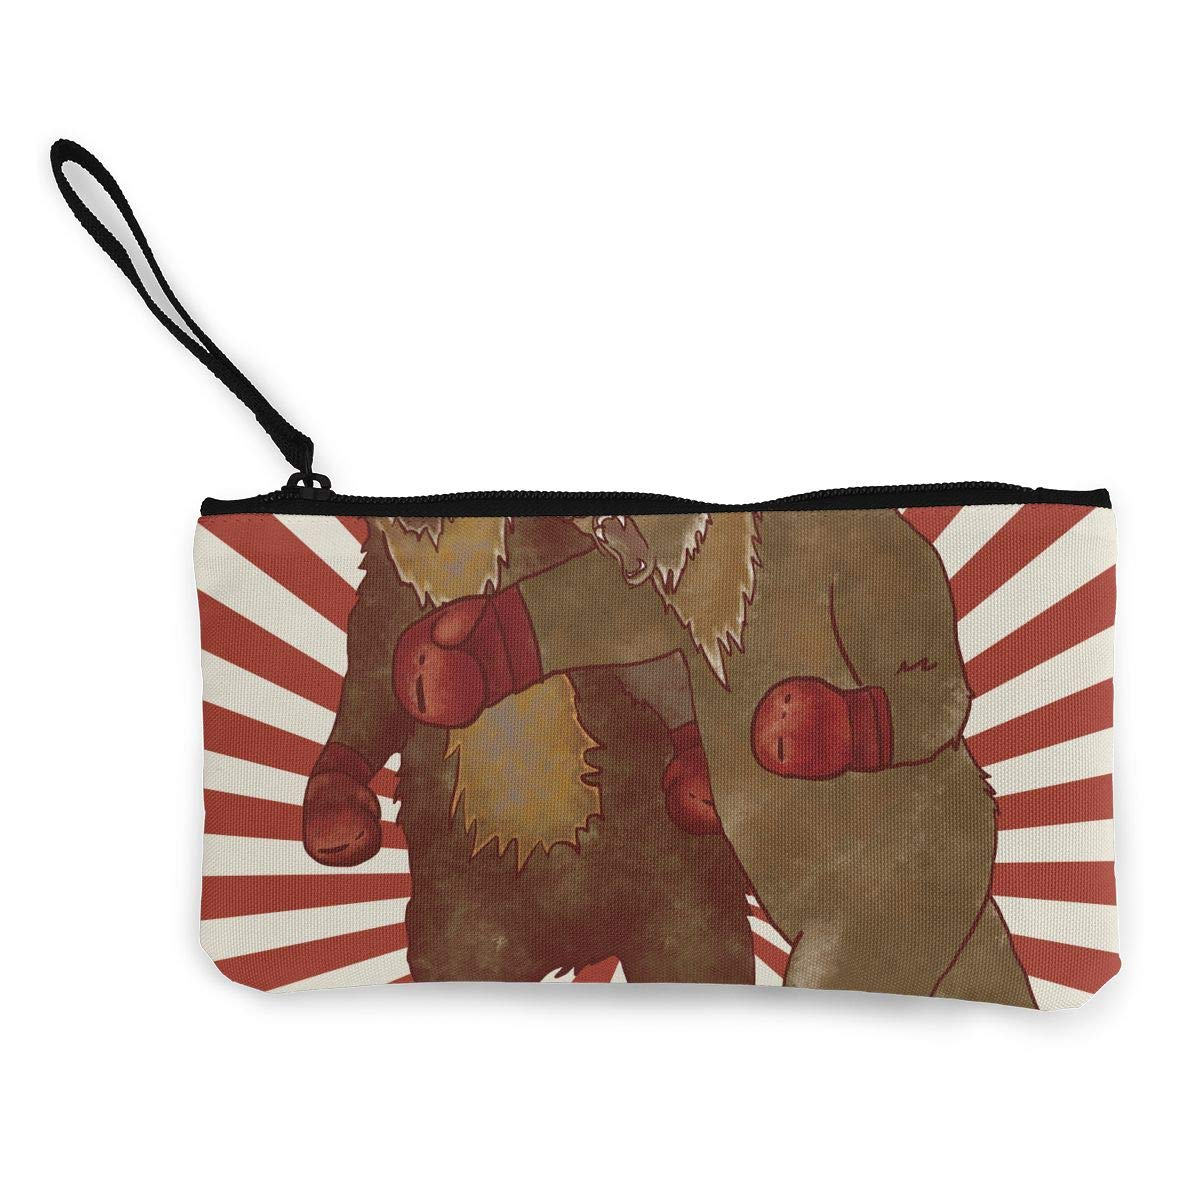 Maple Memories Bear Fight Boxing Portable Canvas Coin Purse Change Purse Pouch Mini Wallet Gifts For Women Girls